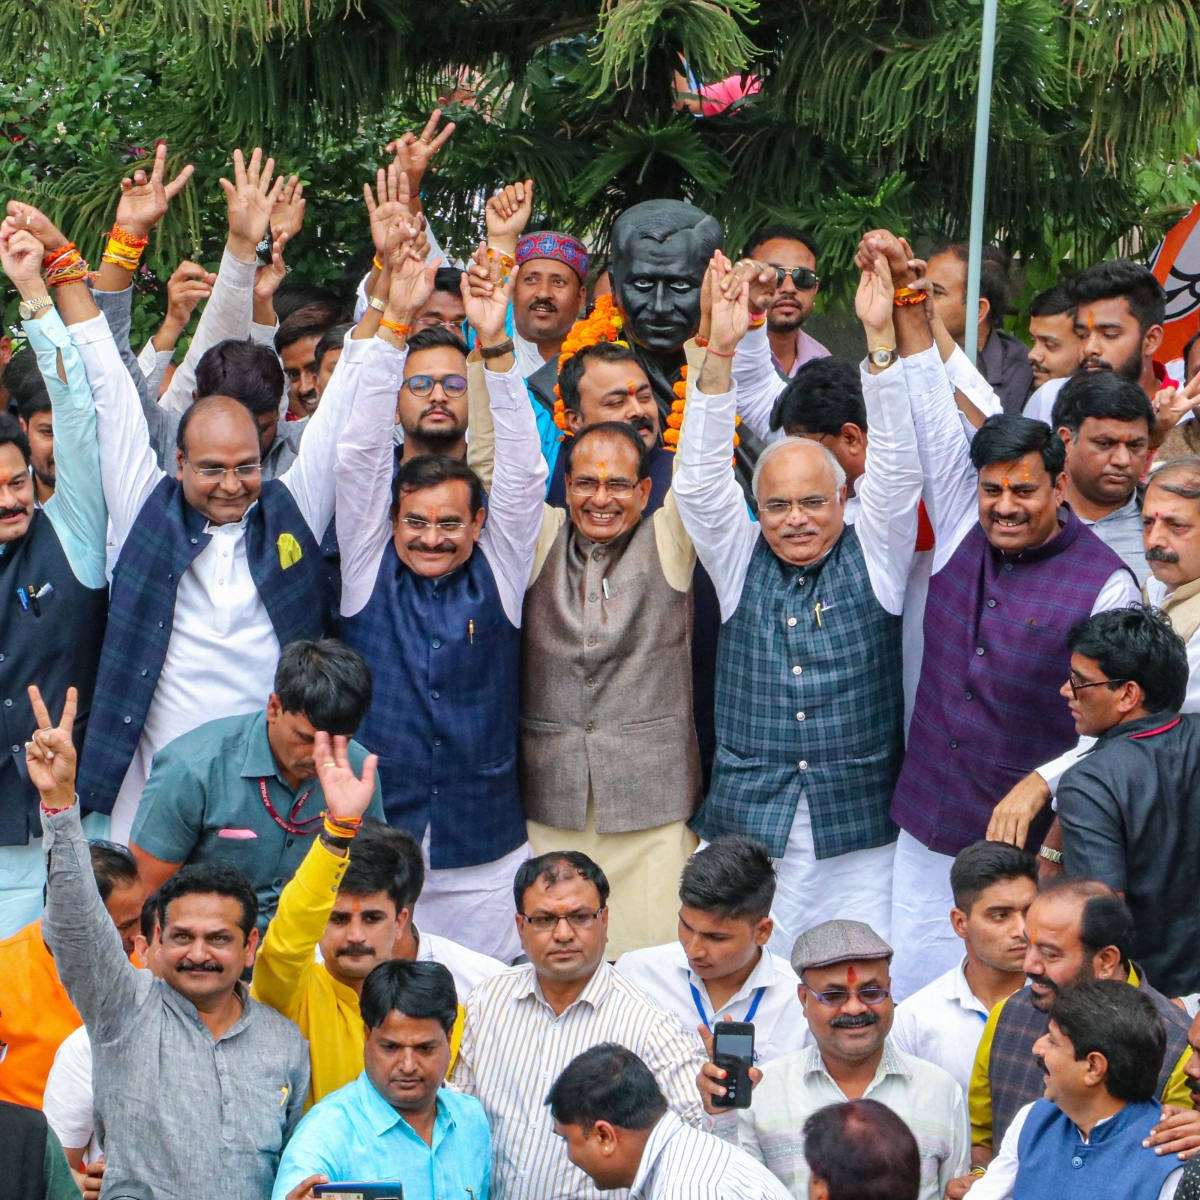 Madhya Pradesh: Despite PM Narendra Modi's advice, BJP leaders and workers gather to celebrate party's return in power